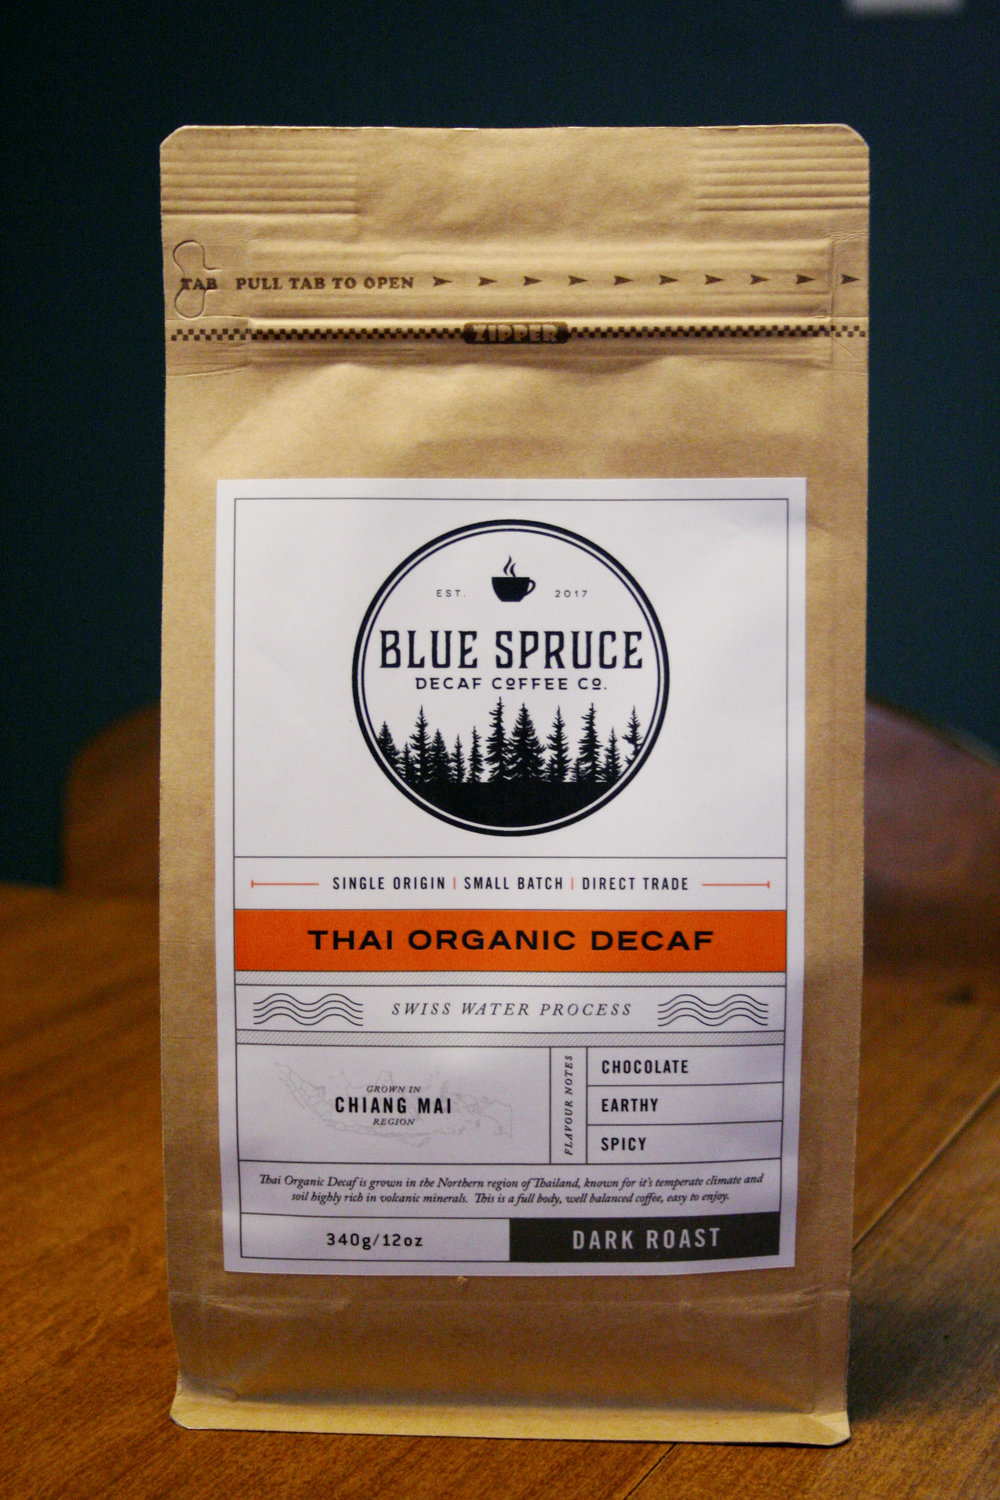 A bag of Blue Spruce Decaf Coffee Company's Thai Organic Decaf Coffee.